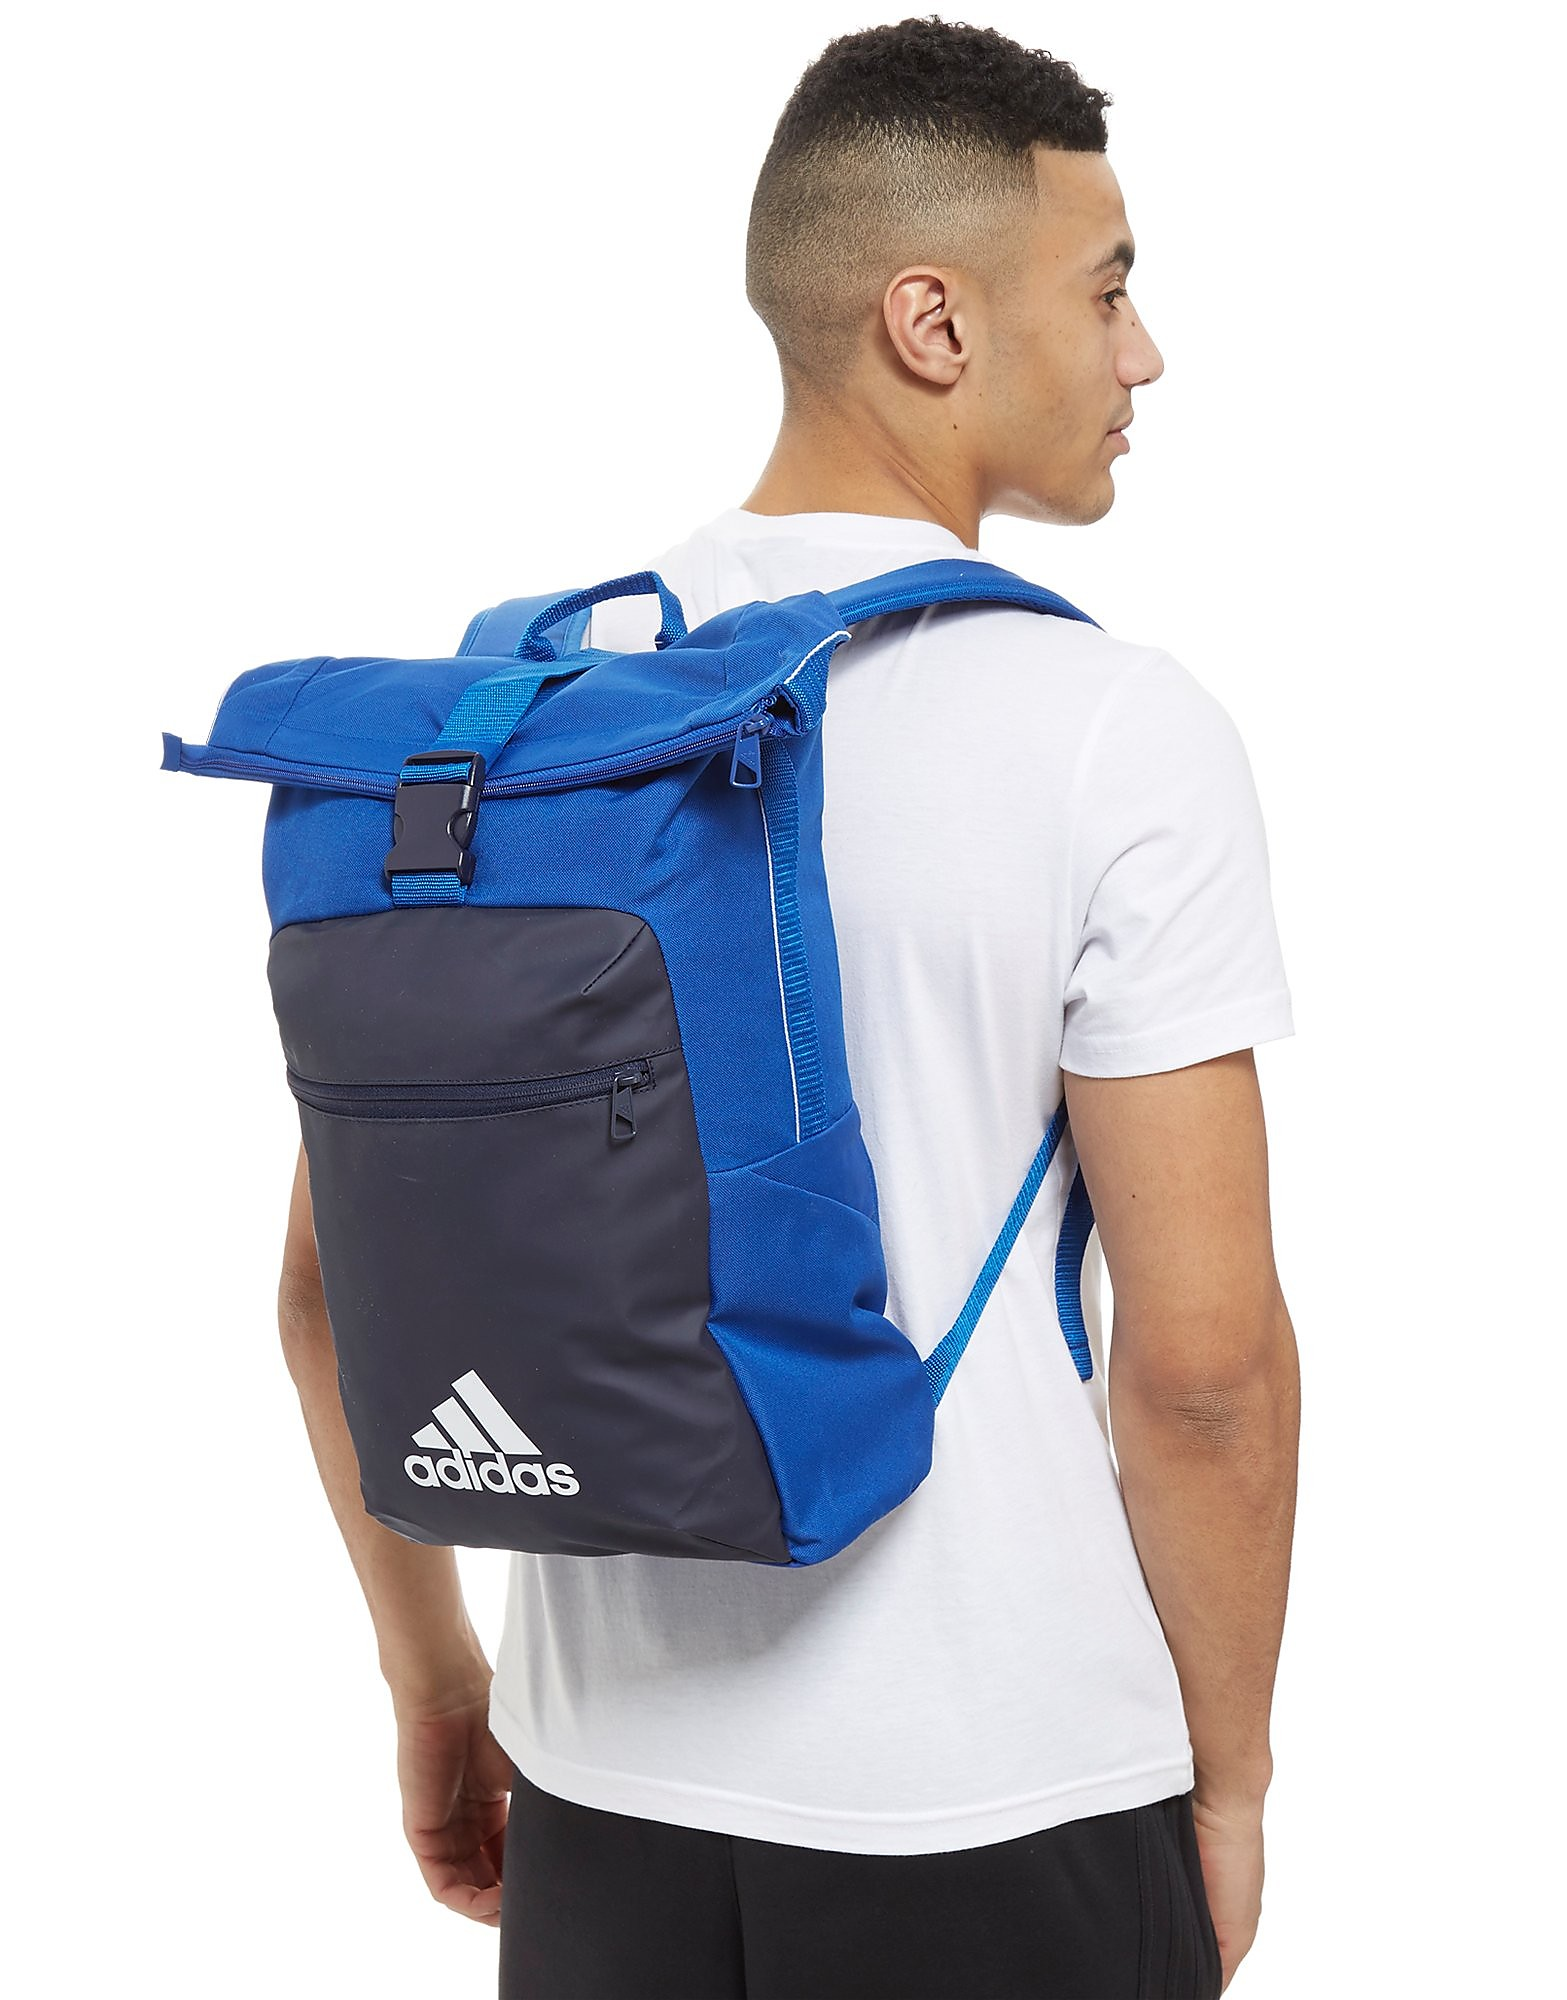 adidas Athletic Backpack